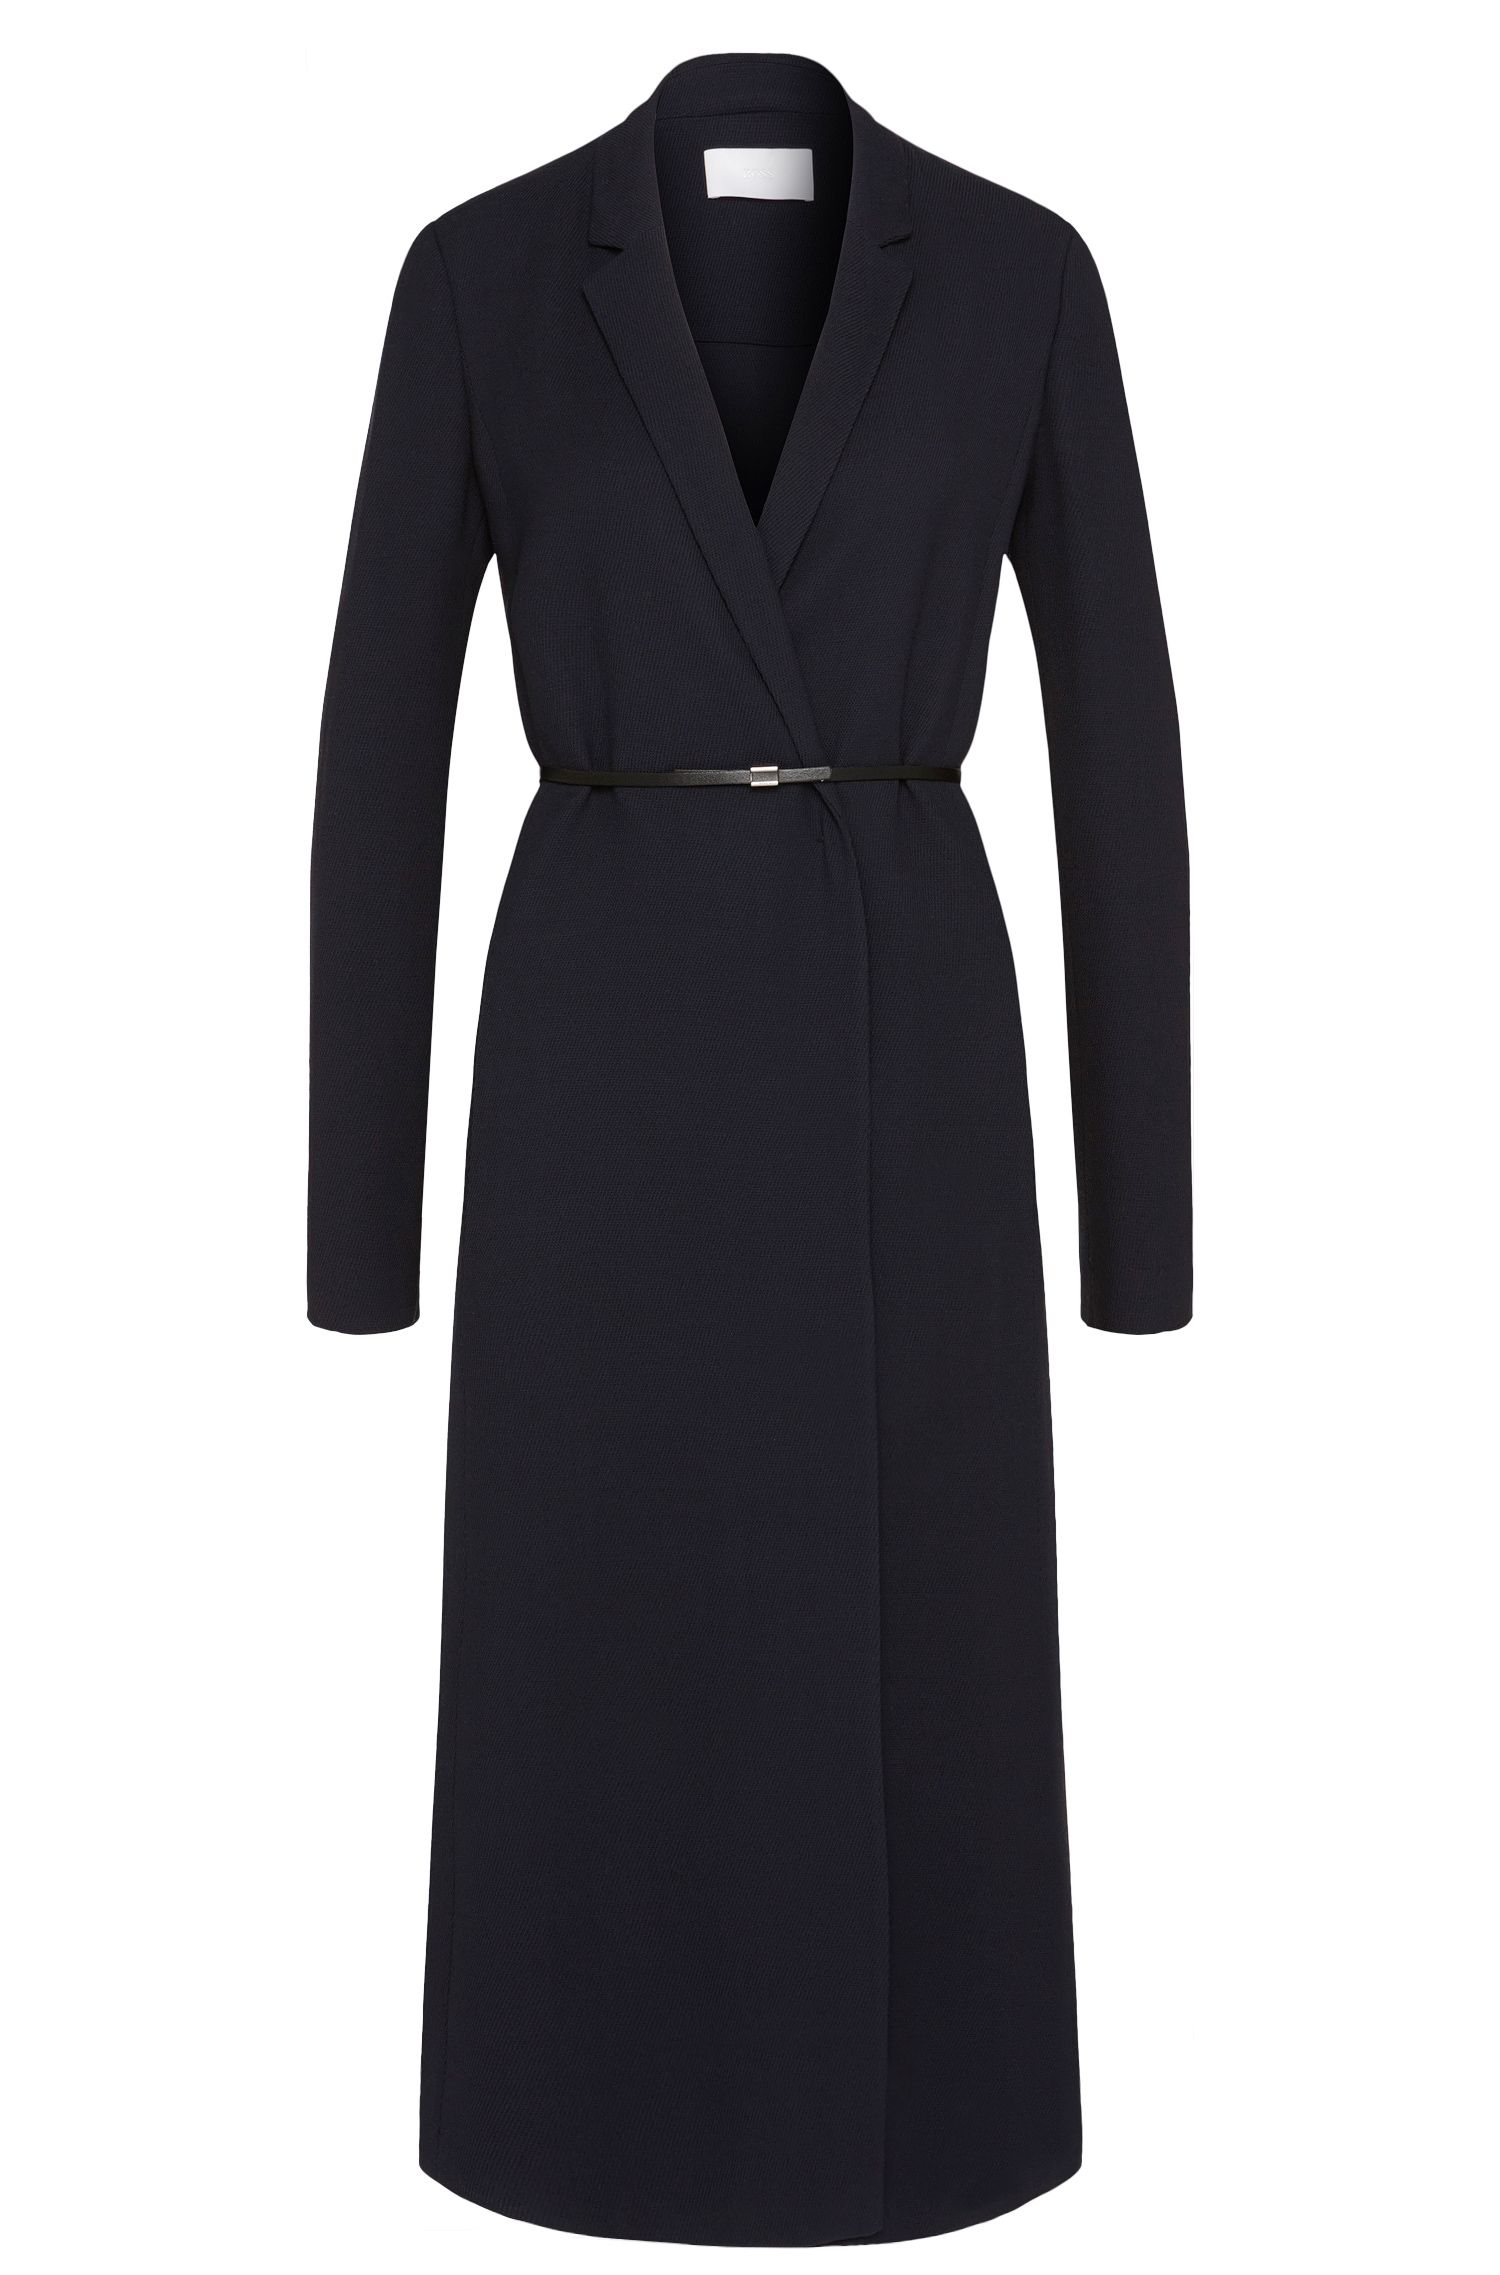 'Doftina' | Virgin Wool Belted Dress Jacket